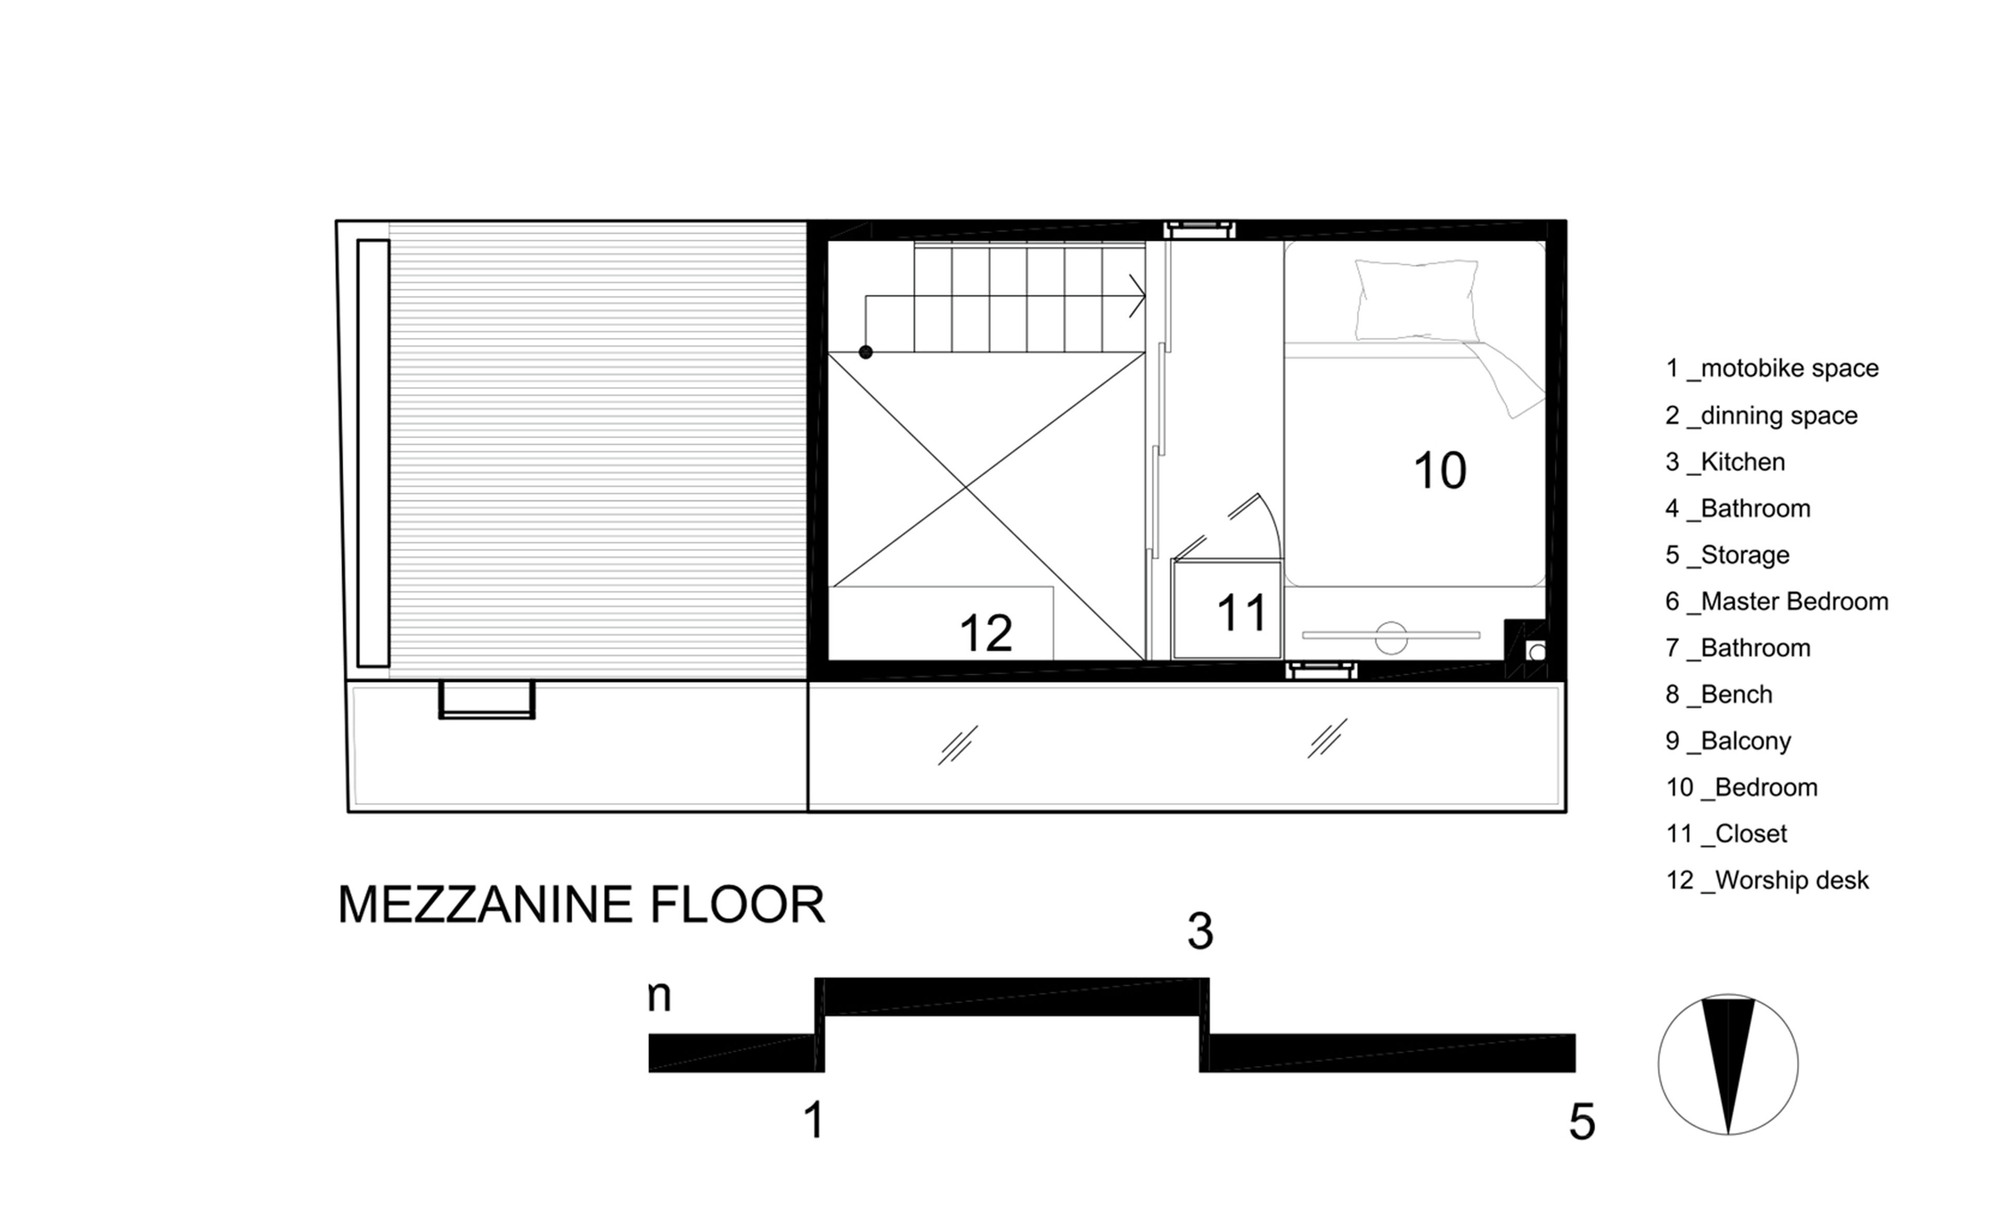 2.5 House / Khuon Studio. 16 / 21. Mezzanine Floor Plan